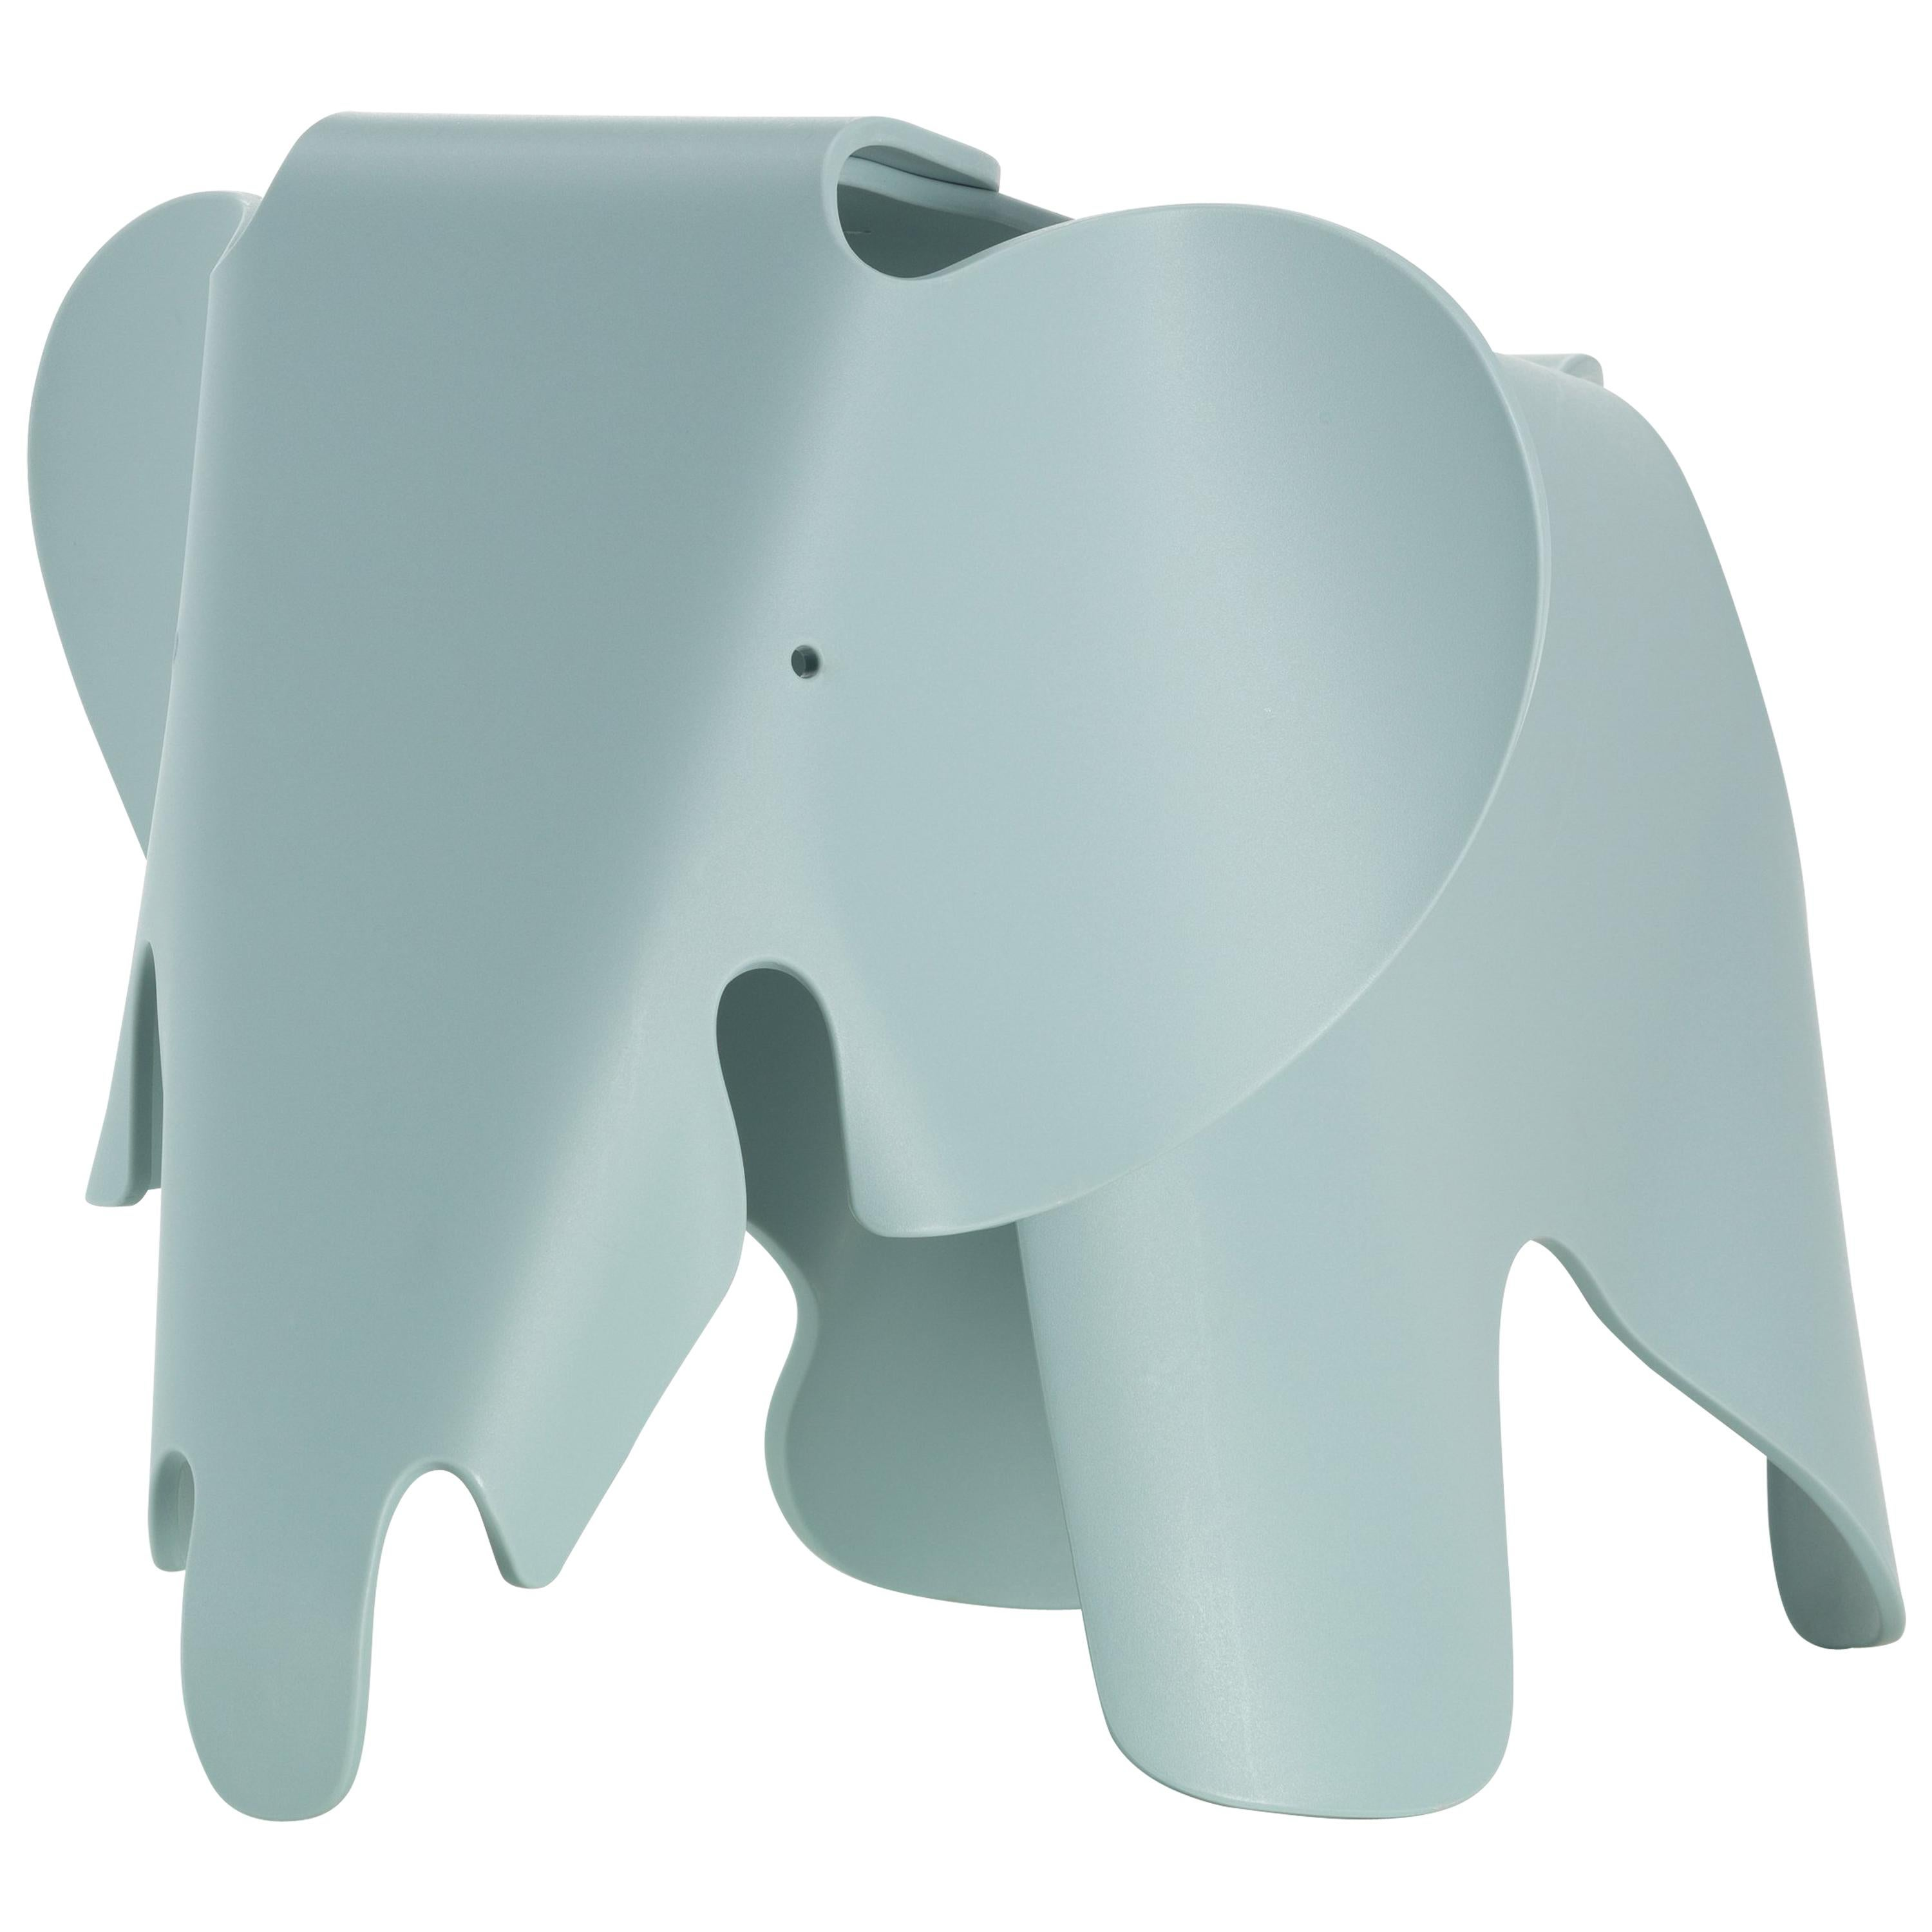 Awe Inspiring Vitra Small Eames Elephant In Ice Grey By Charles Ray Eames Gmtry Best Dining Table And Chair Ideas Images Gmtryco